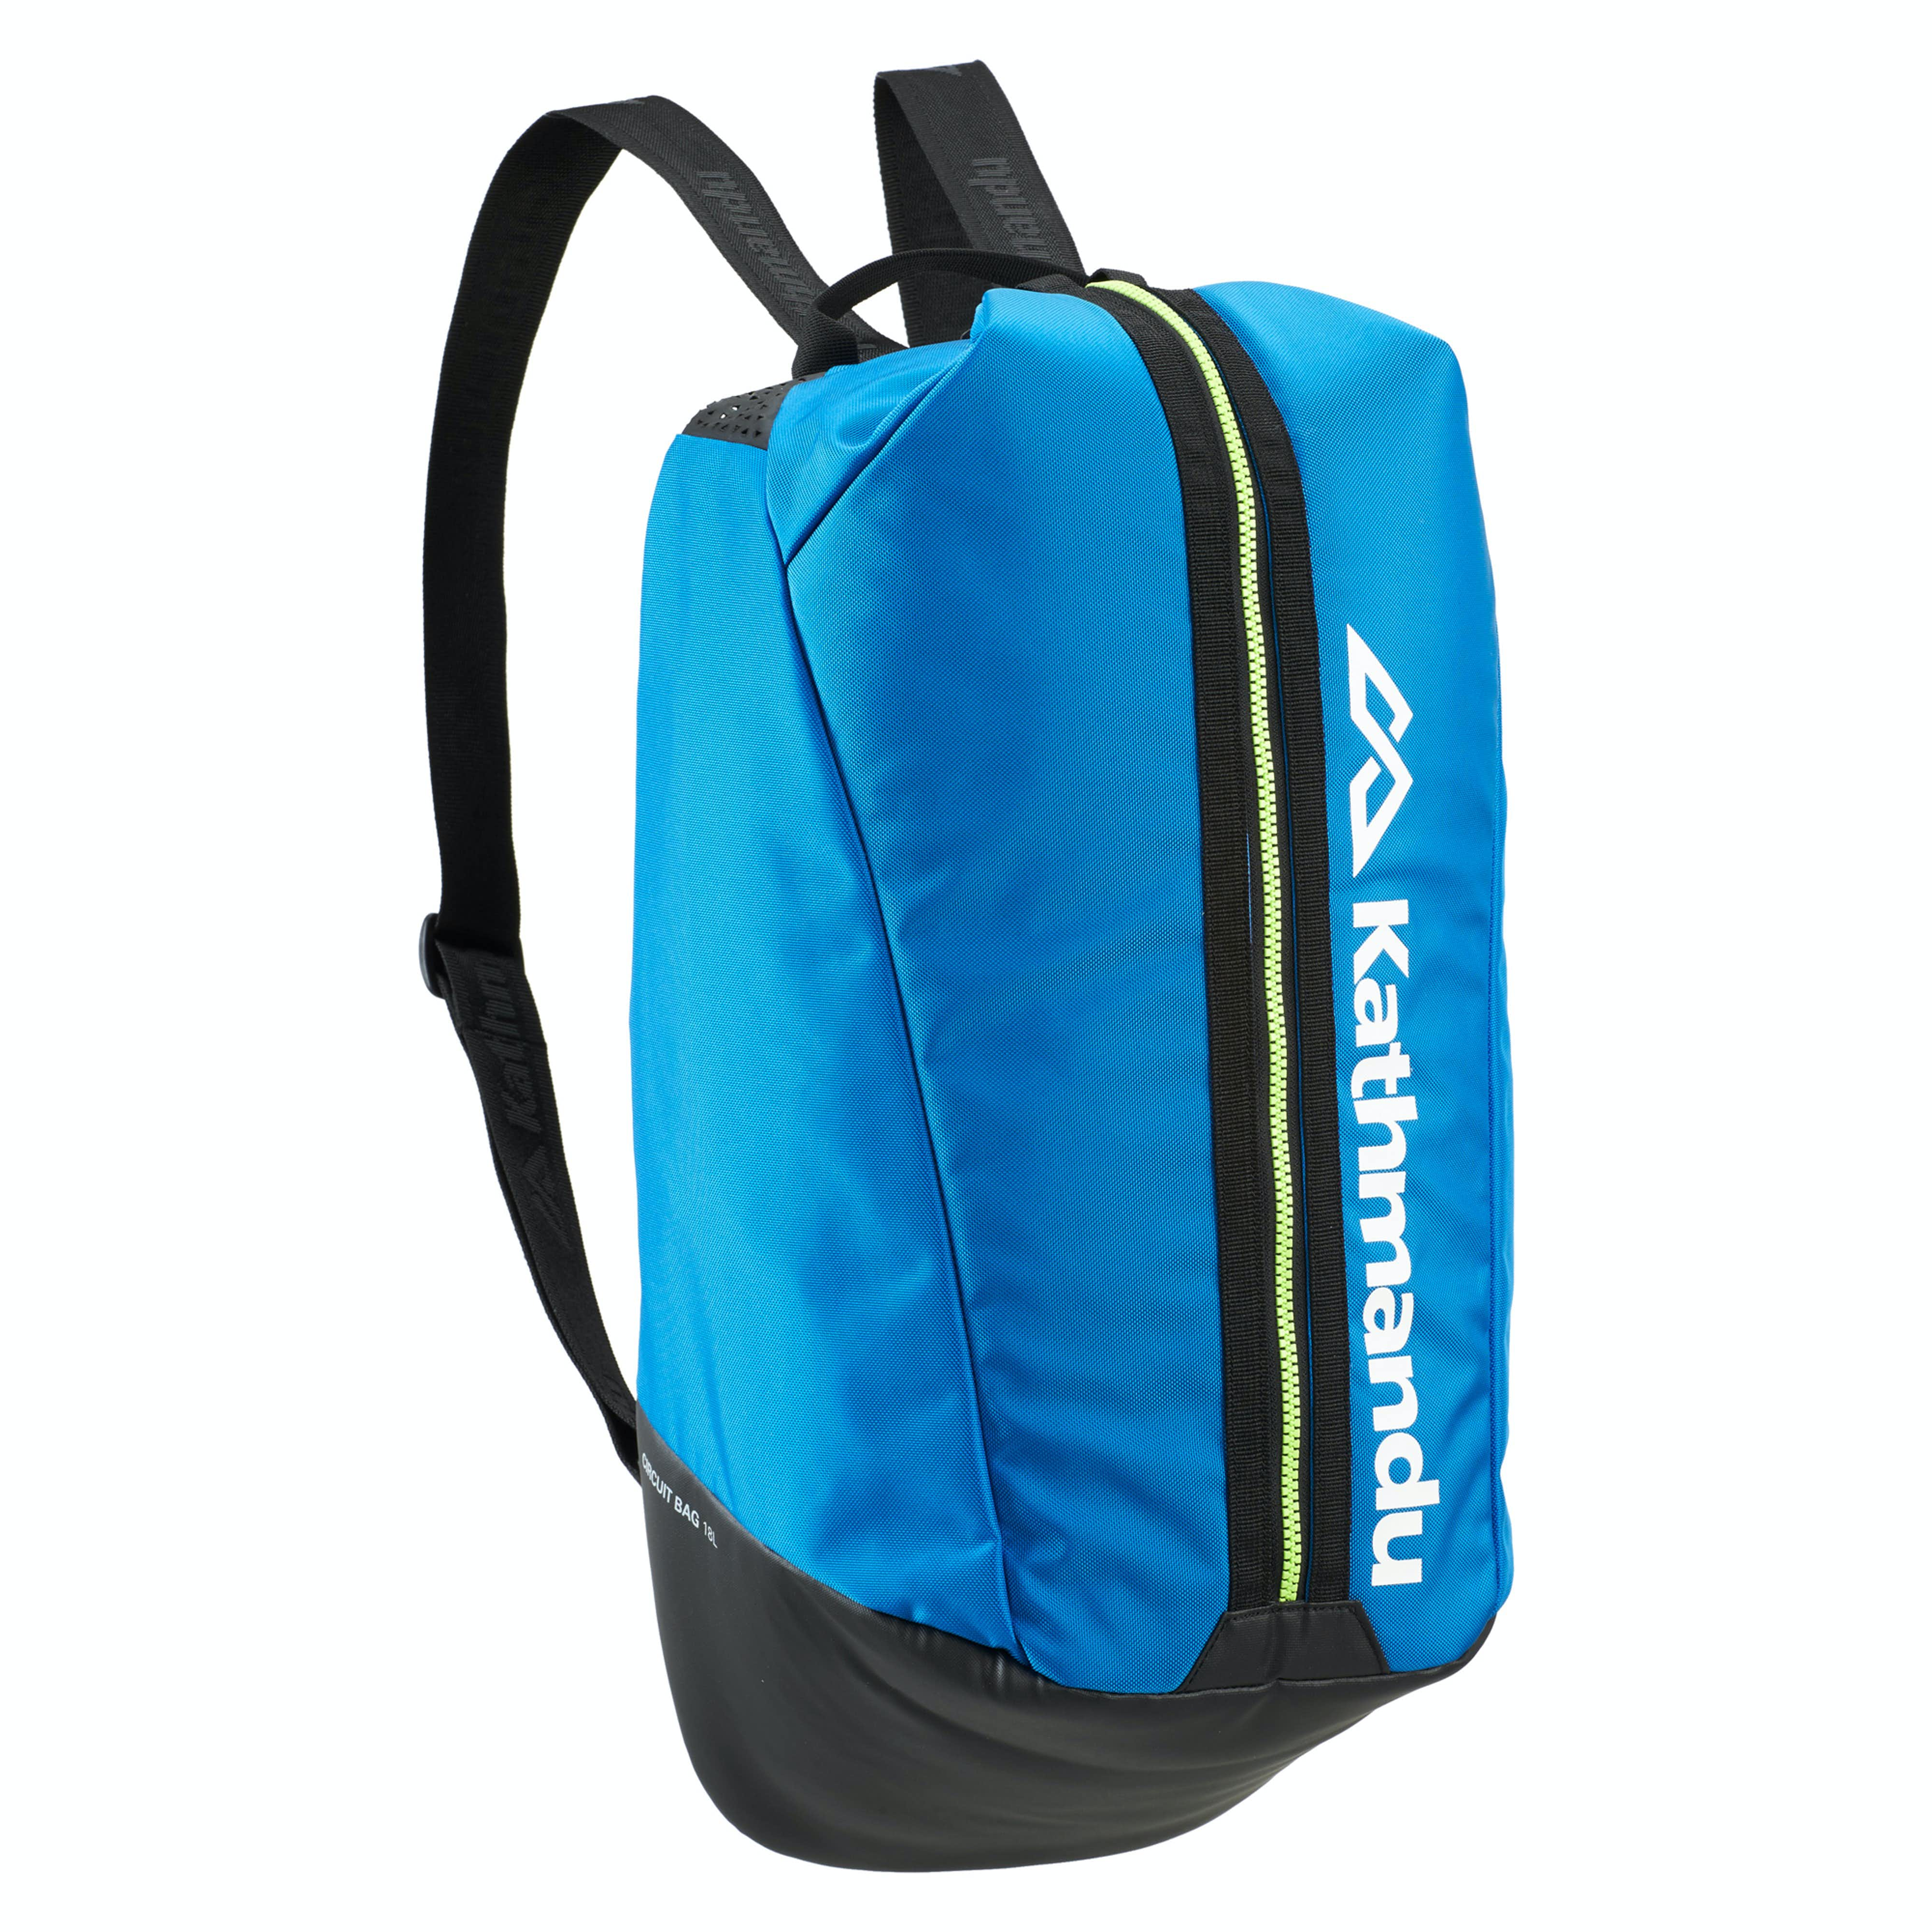 Hiking   Camping Bags  dbb12d7ee8